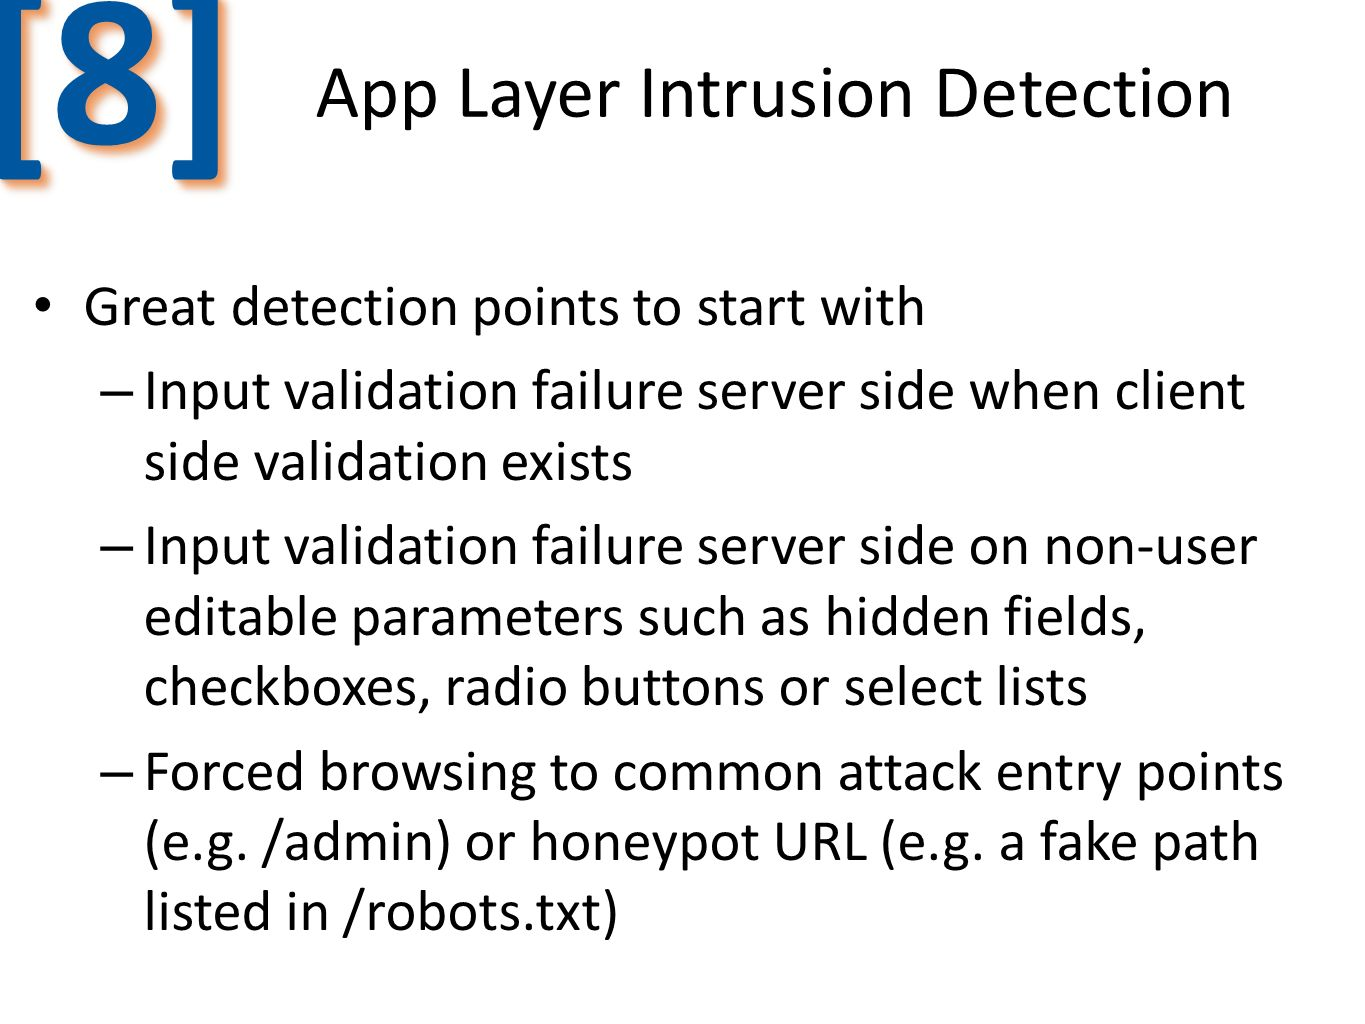 App Layer Intrusion Detection [8][8] Great detection points to start with – Input validation failure server side when client side validation exists –